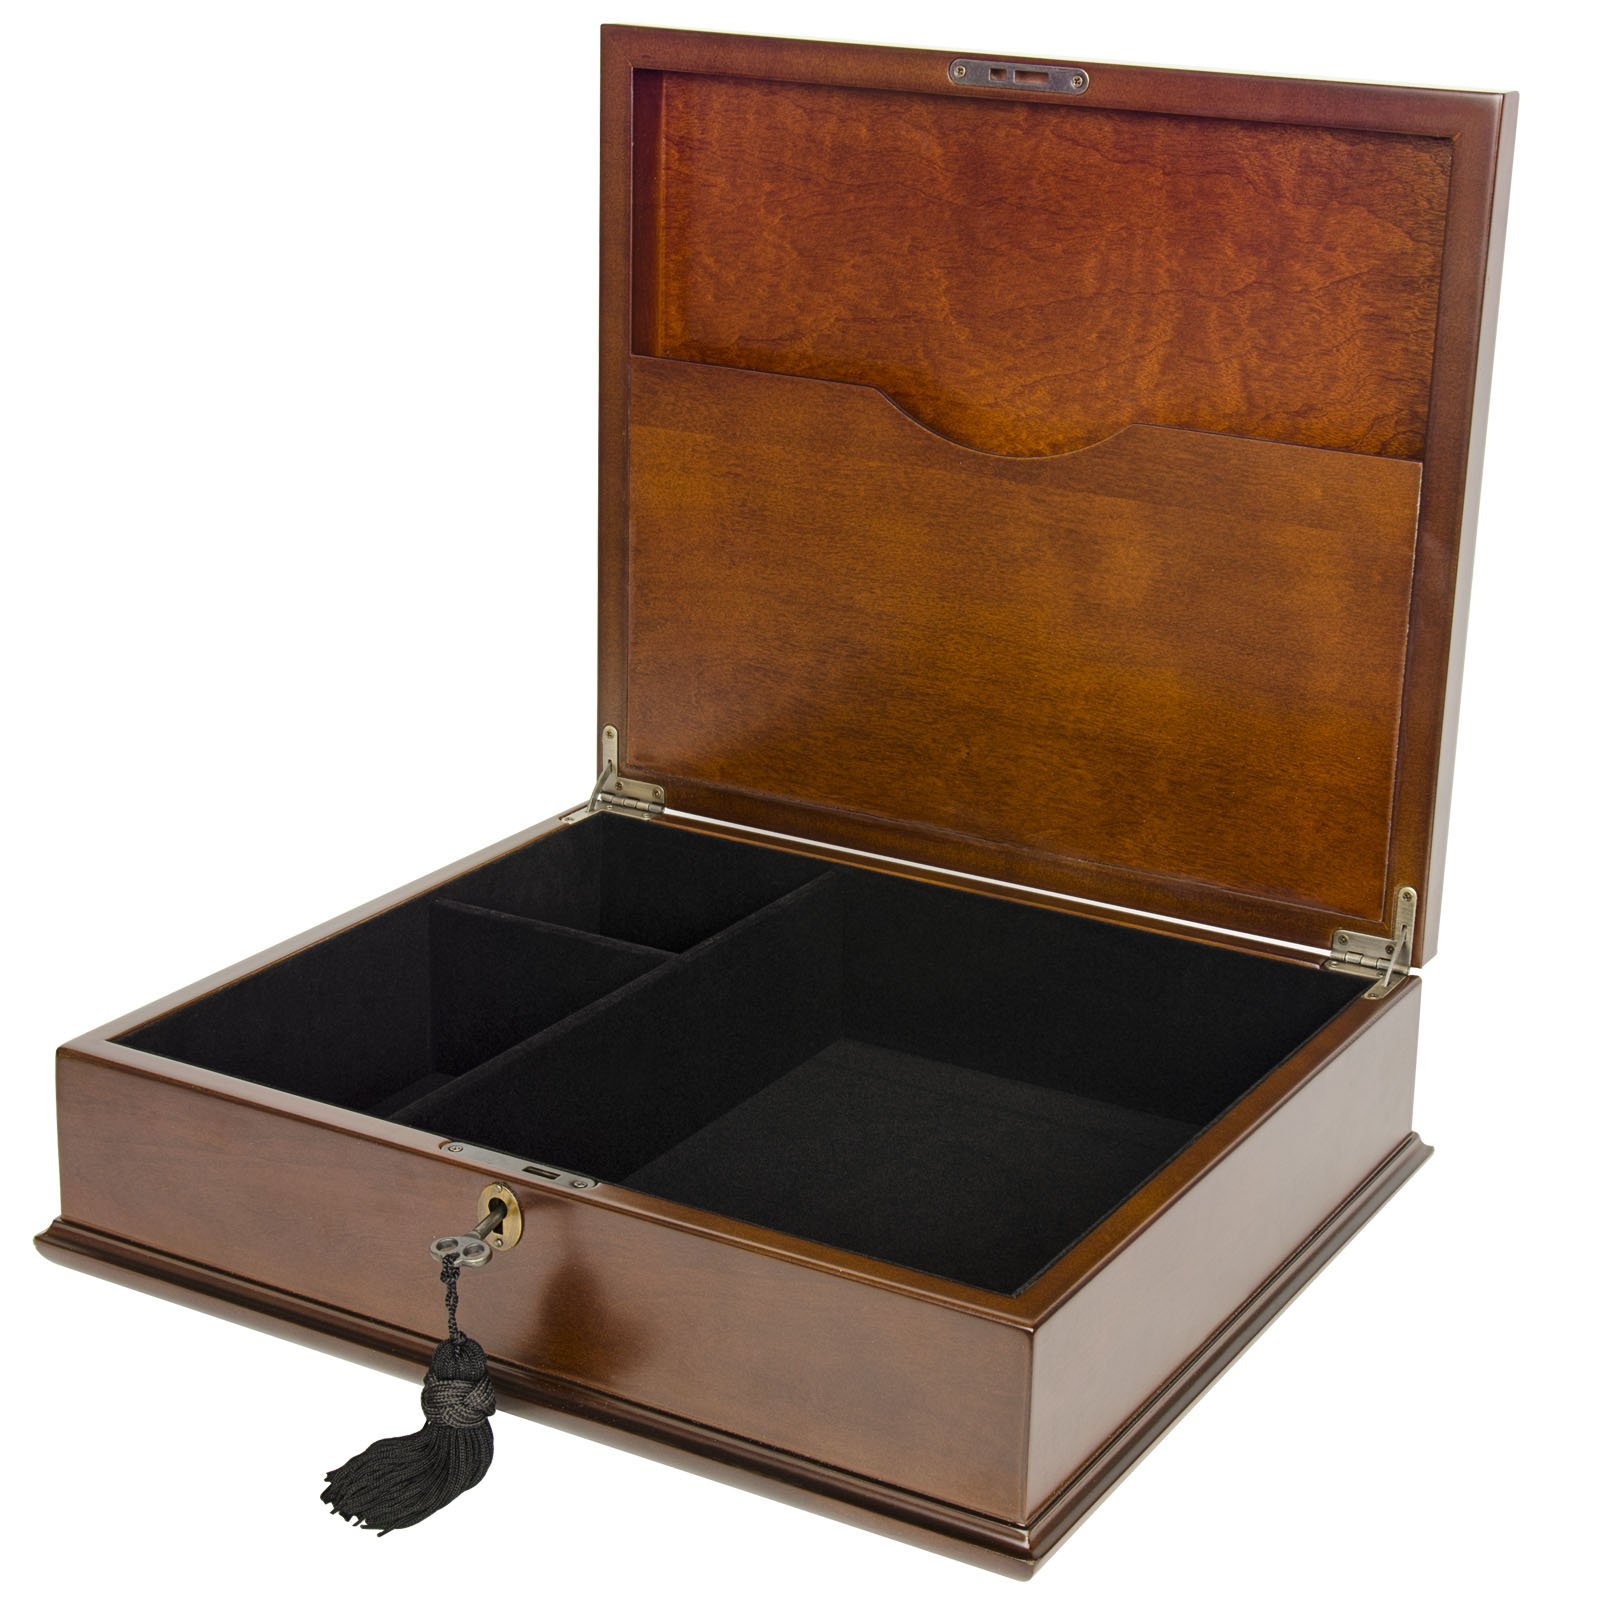 Large Romeo Memory Box Organizer Mahogany Wood Finish for Photo Album CD DVD USB & other Valuables Size 14 x 12 x 5 Inches by Arolly (Image #3)